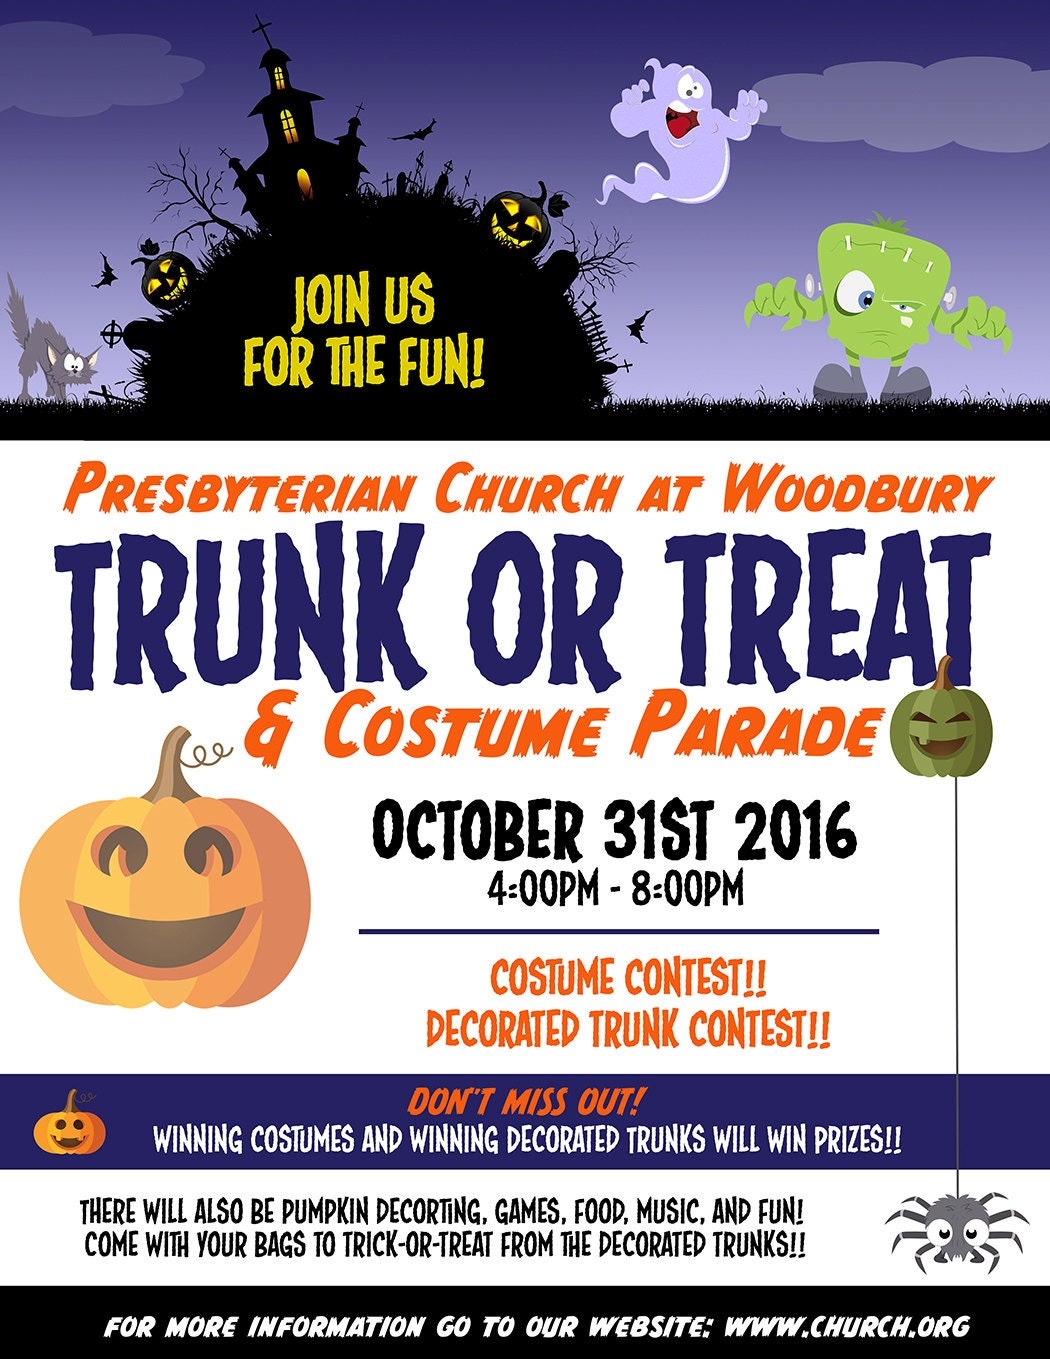 trunk or treat flyer examples radiovkm tk